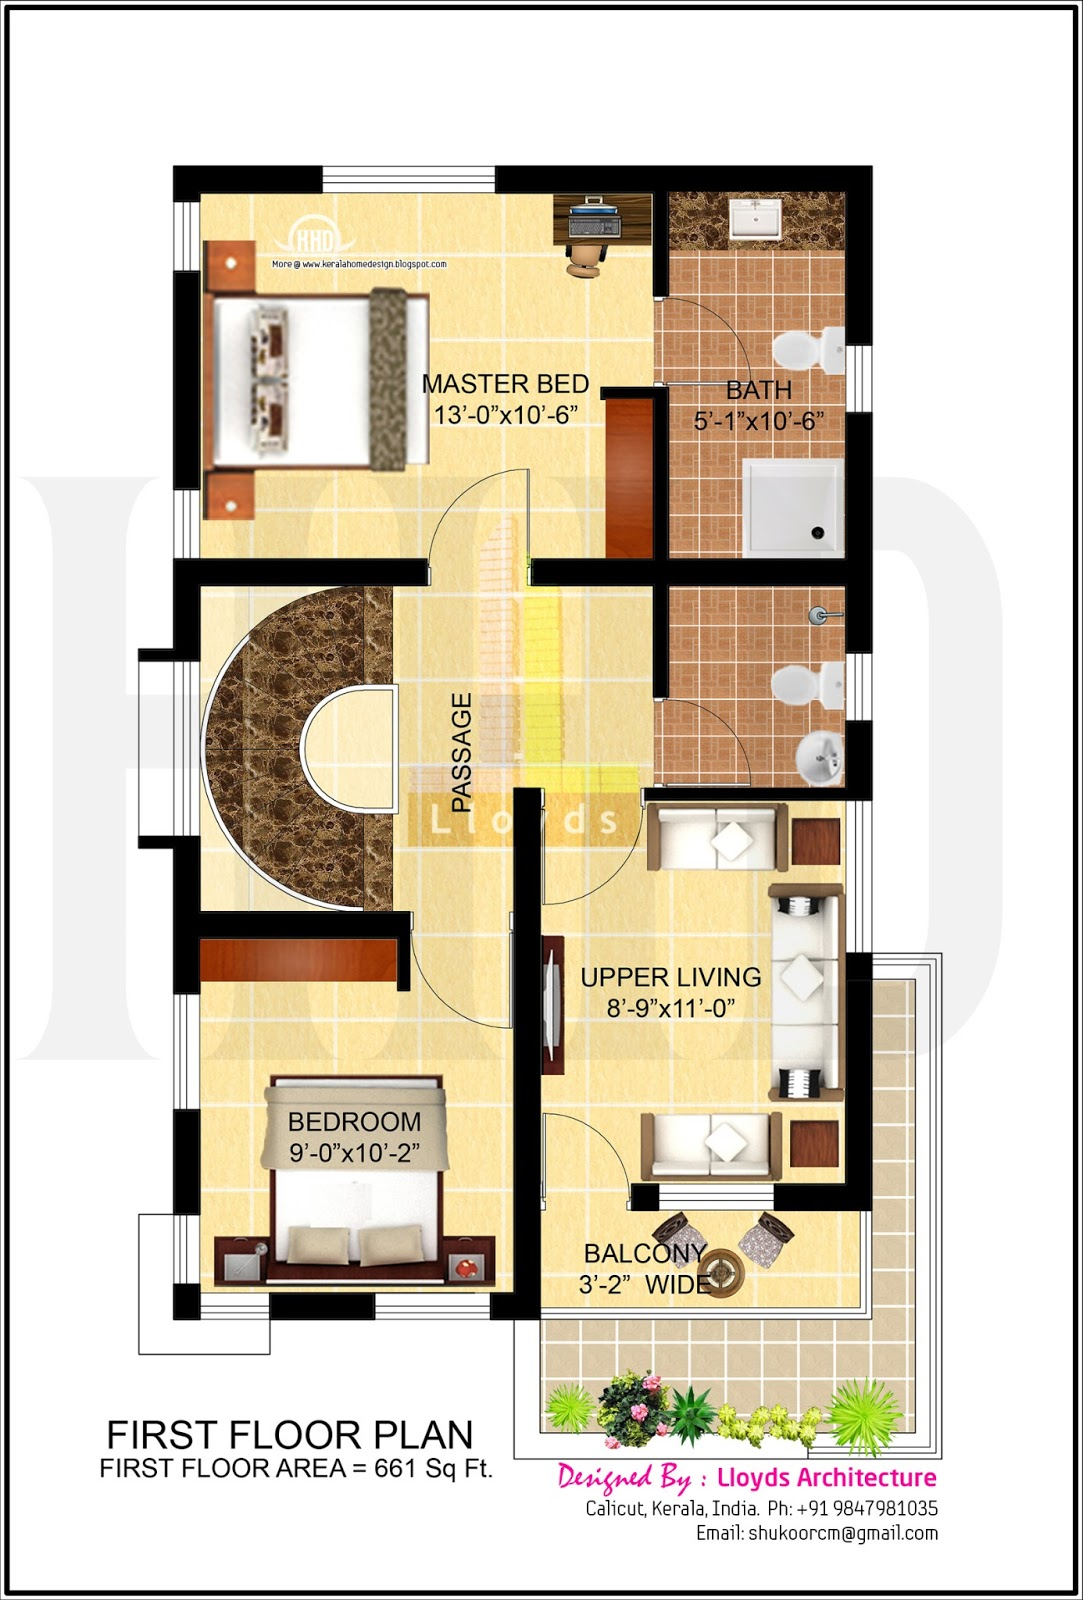 4 bedroom house plan in less that 3 cents home kerala plans for 4 bedroom farmhouse plans